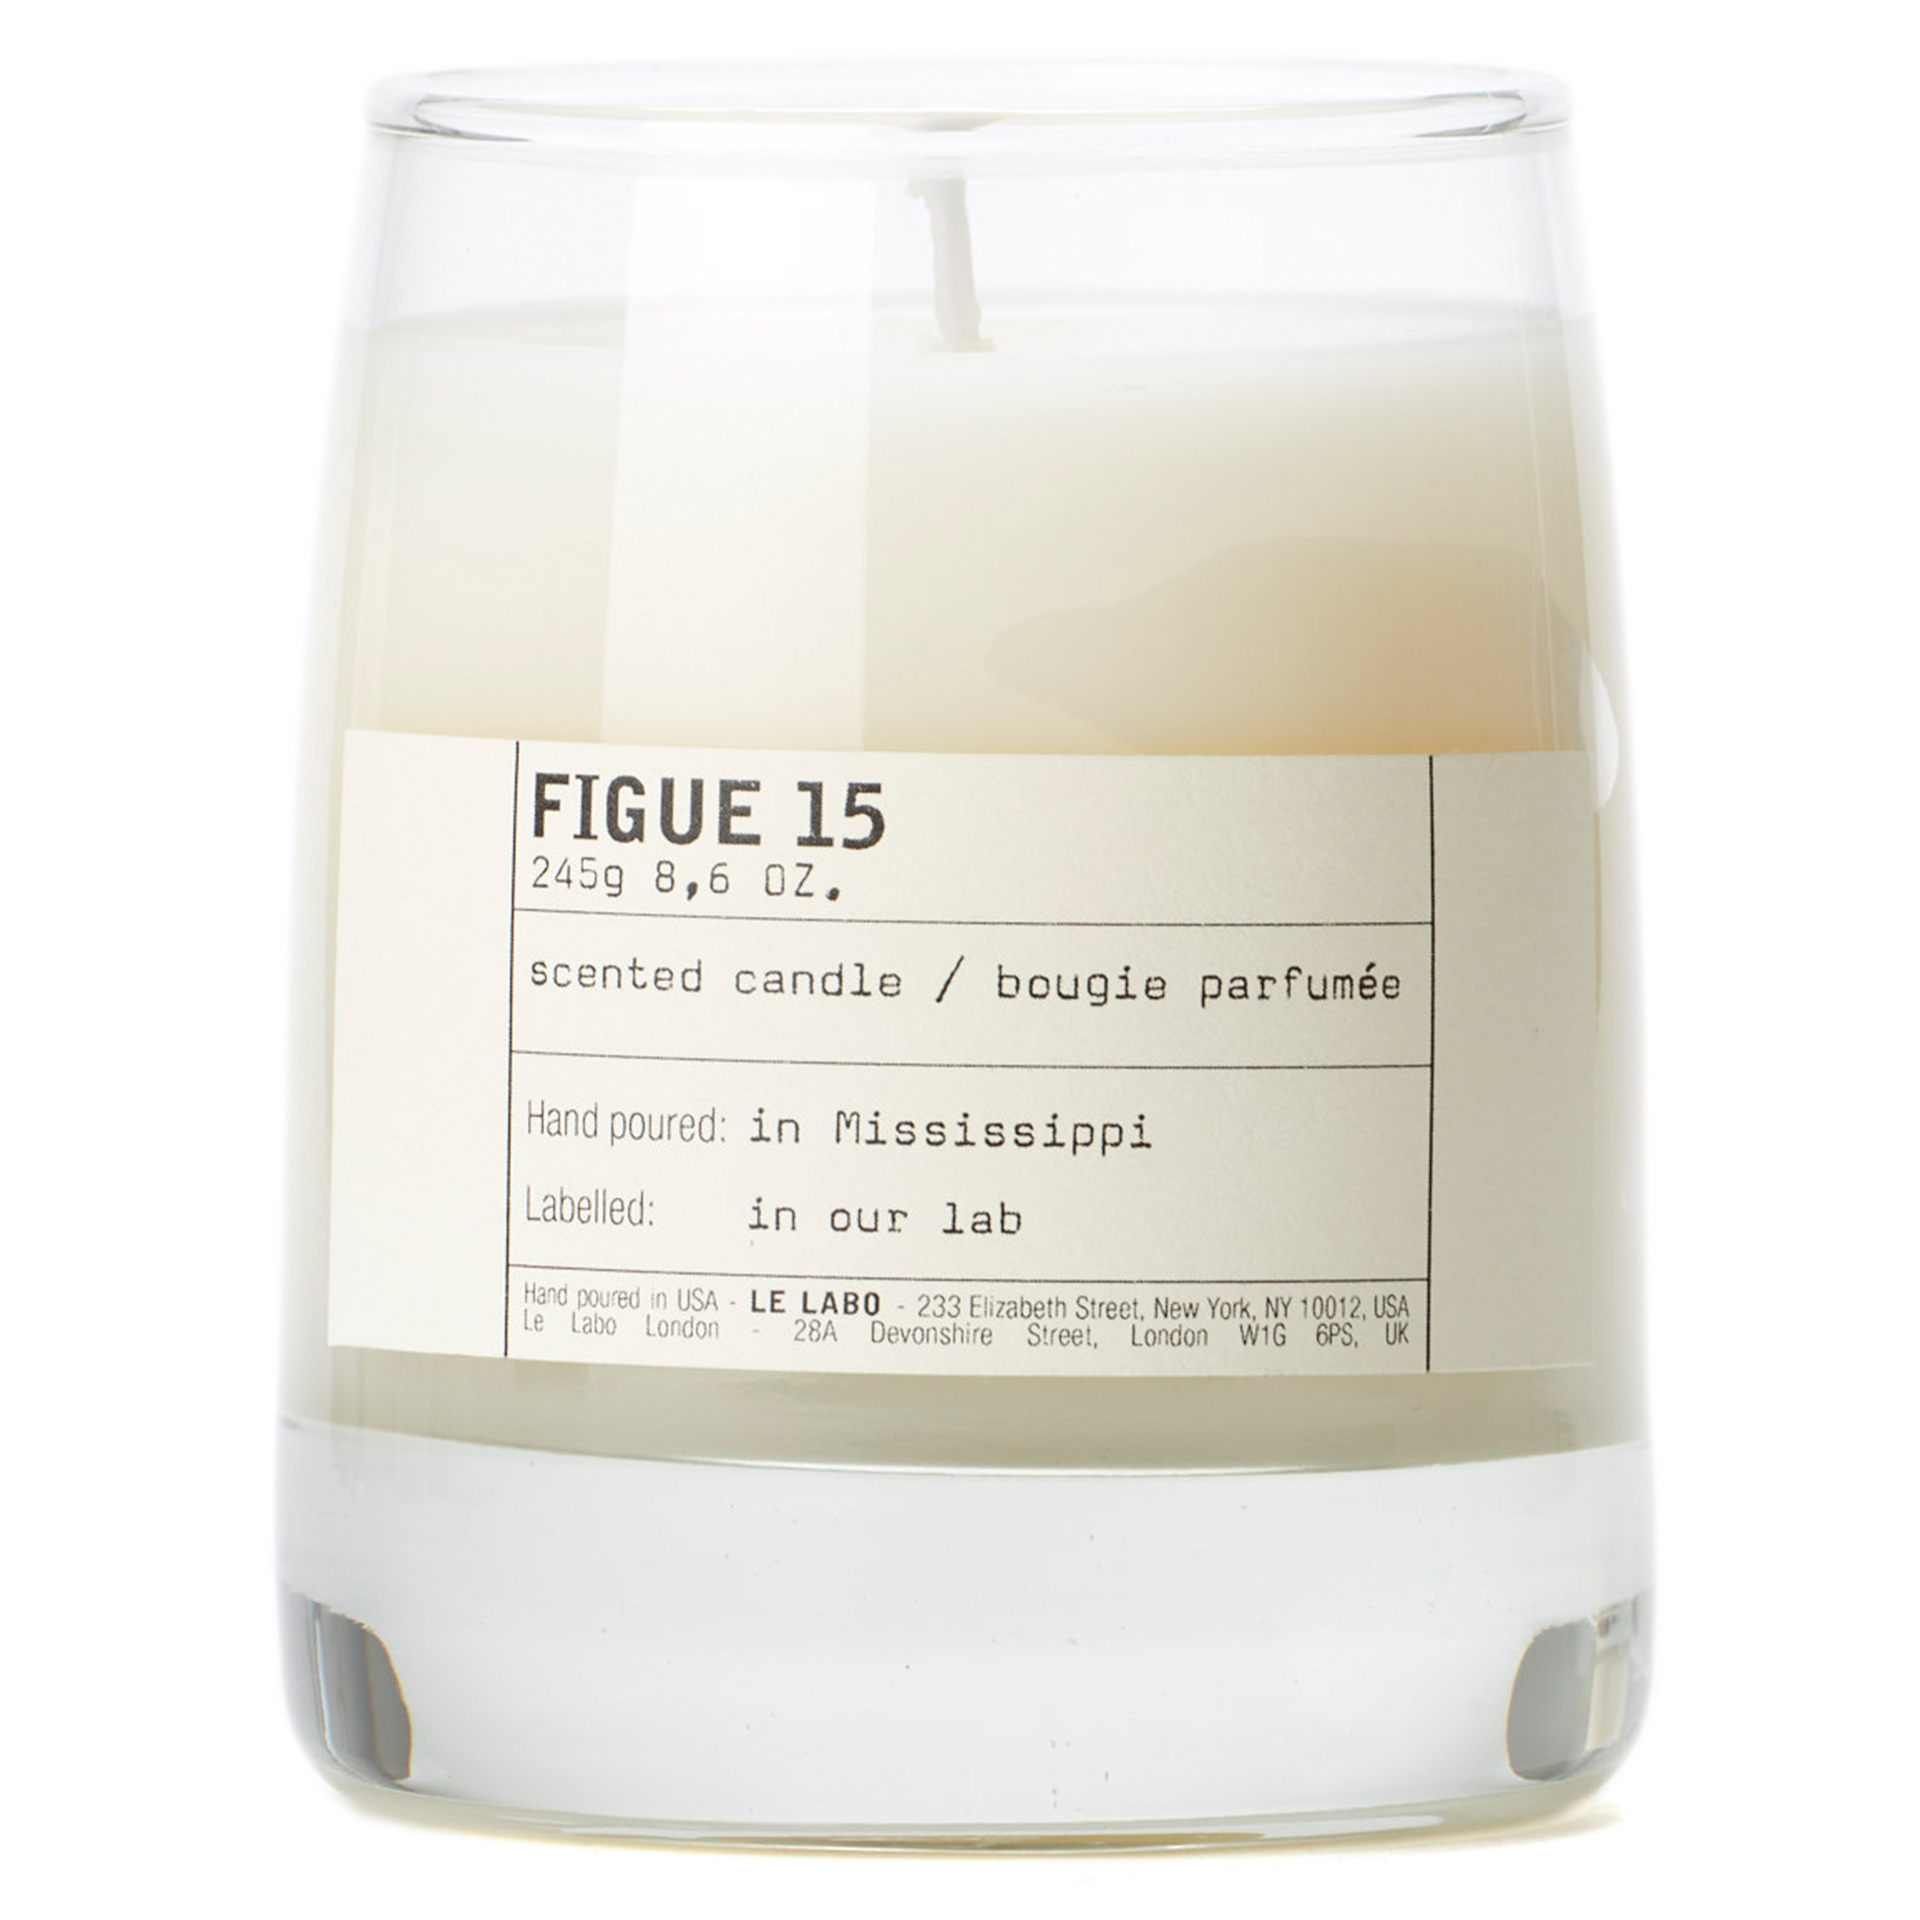 Figue 15 - Classic Candle